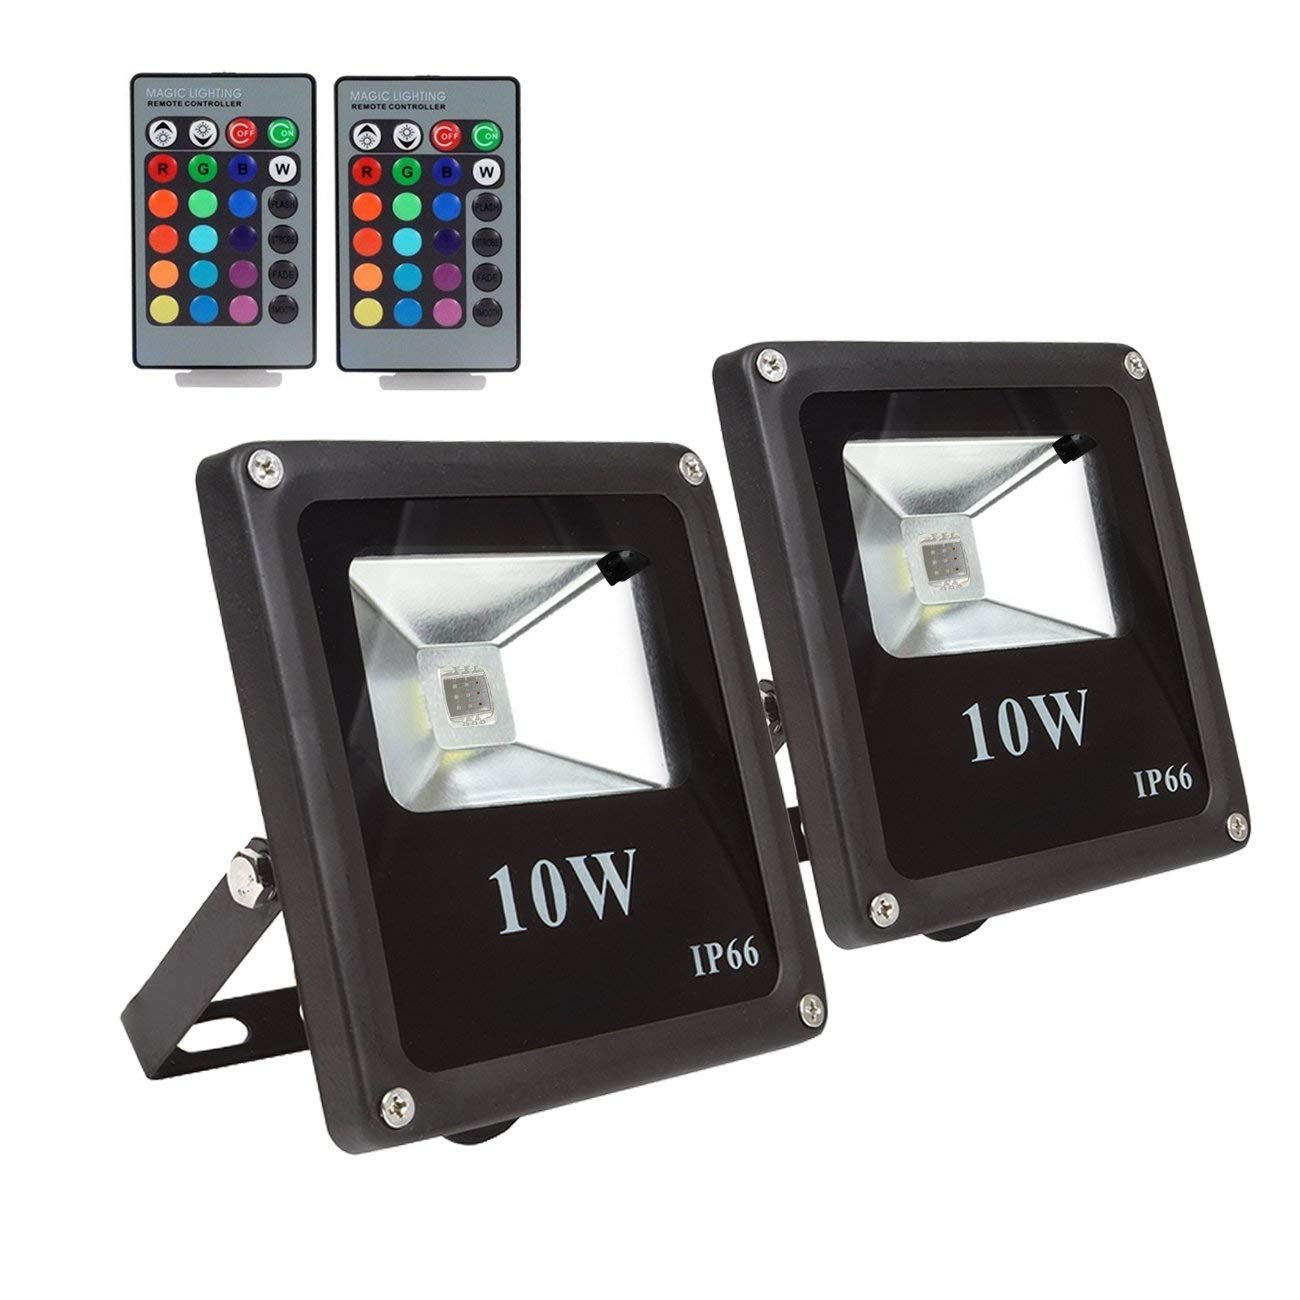 2 Pack Rgb Led Flood Lights Outdoor Color Changing Floodlight With Remote Control Ip66 Waterproof 16 Colors 4 Modes Led Flood Lights Led Flood Flood Lights